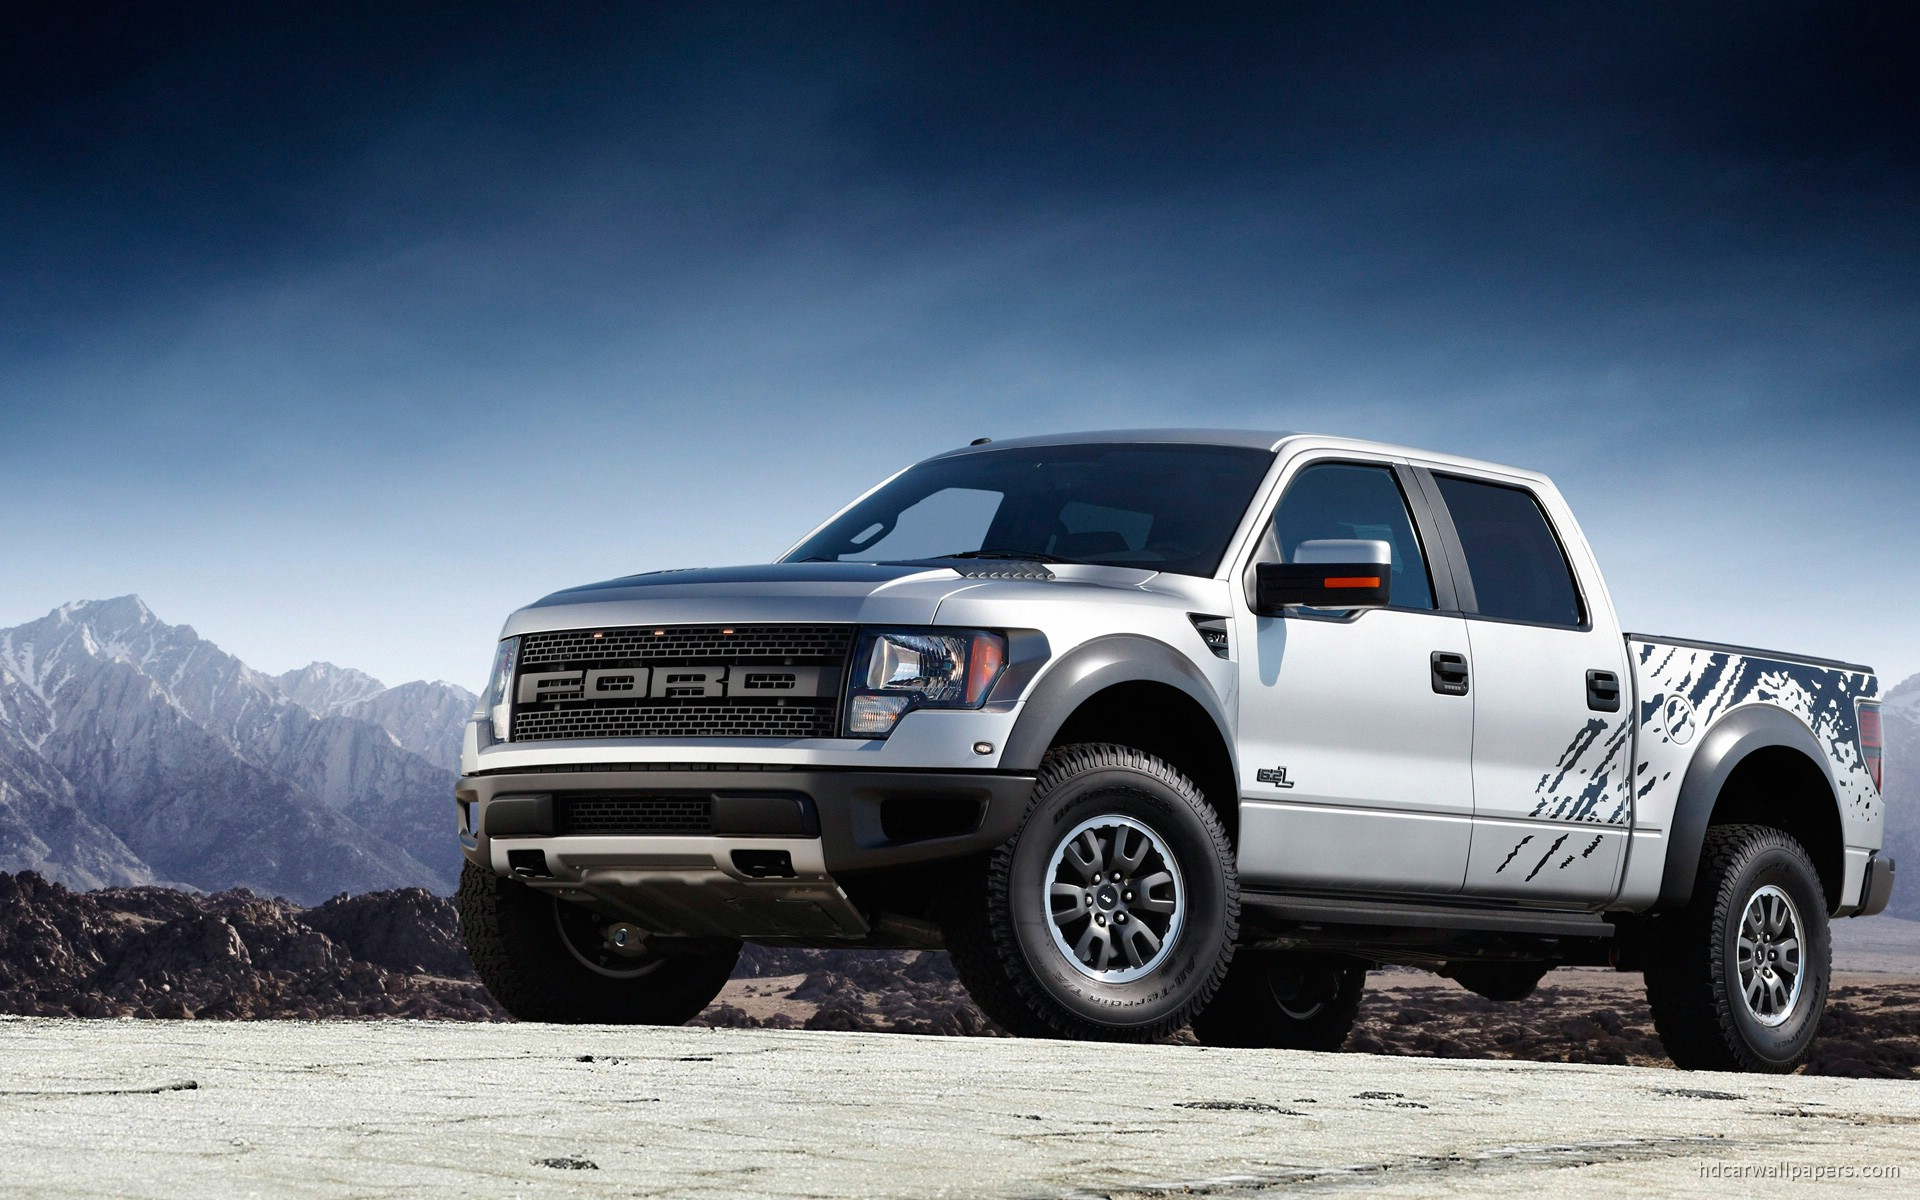 2011 ford f150 Raptor Wallpaper HD Car Wallpapers 1920x1200